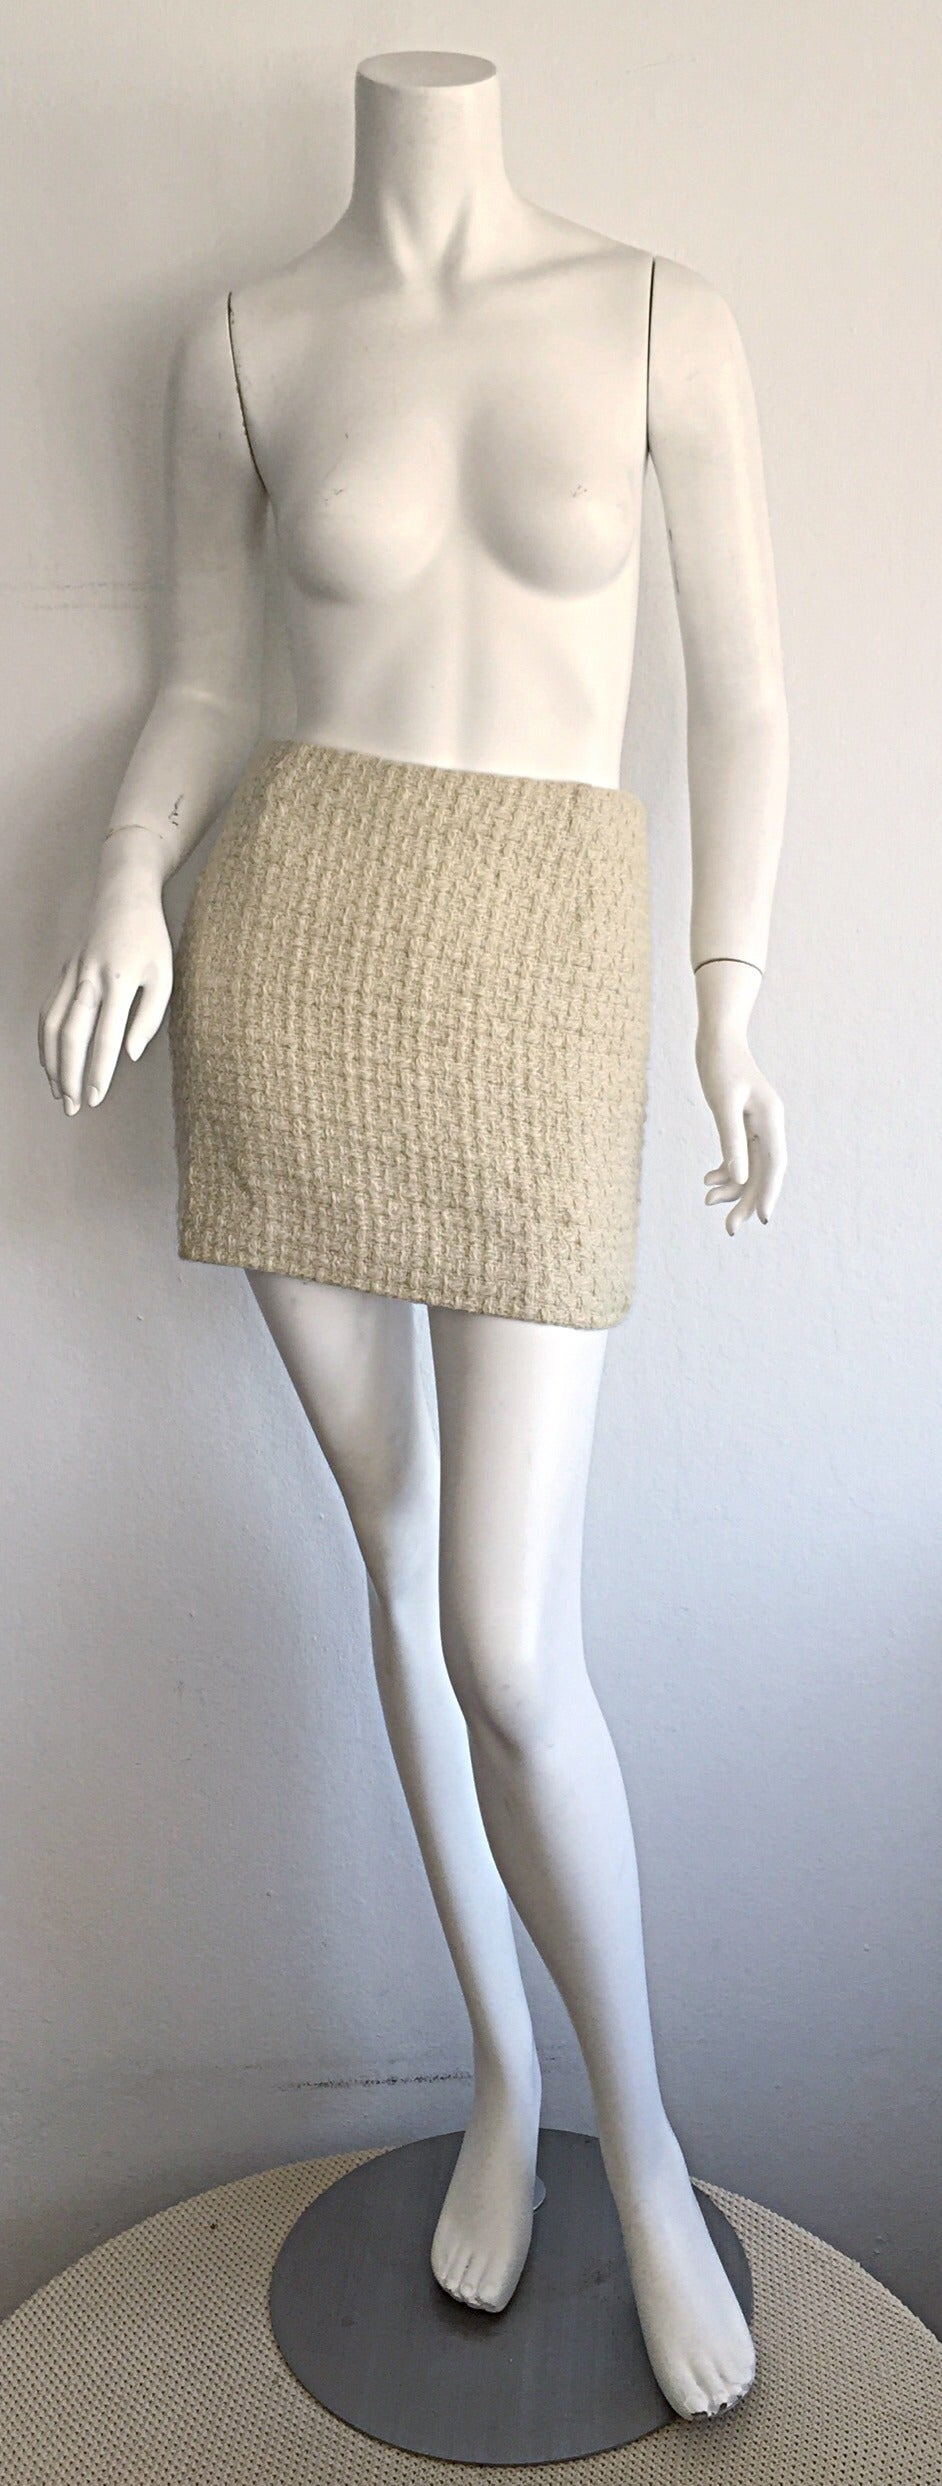 Sexy 1990s Vintage Gianni Versace Couture Ivory Off - White Cashmere Mini Skirt 2